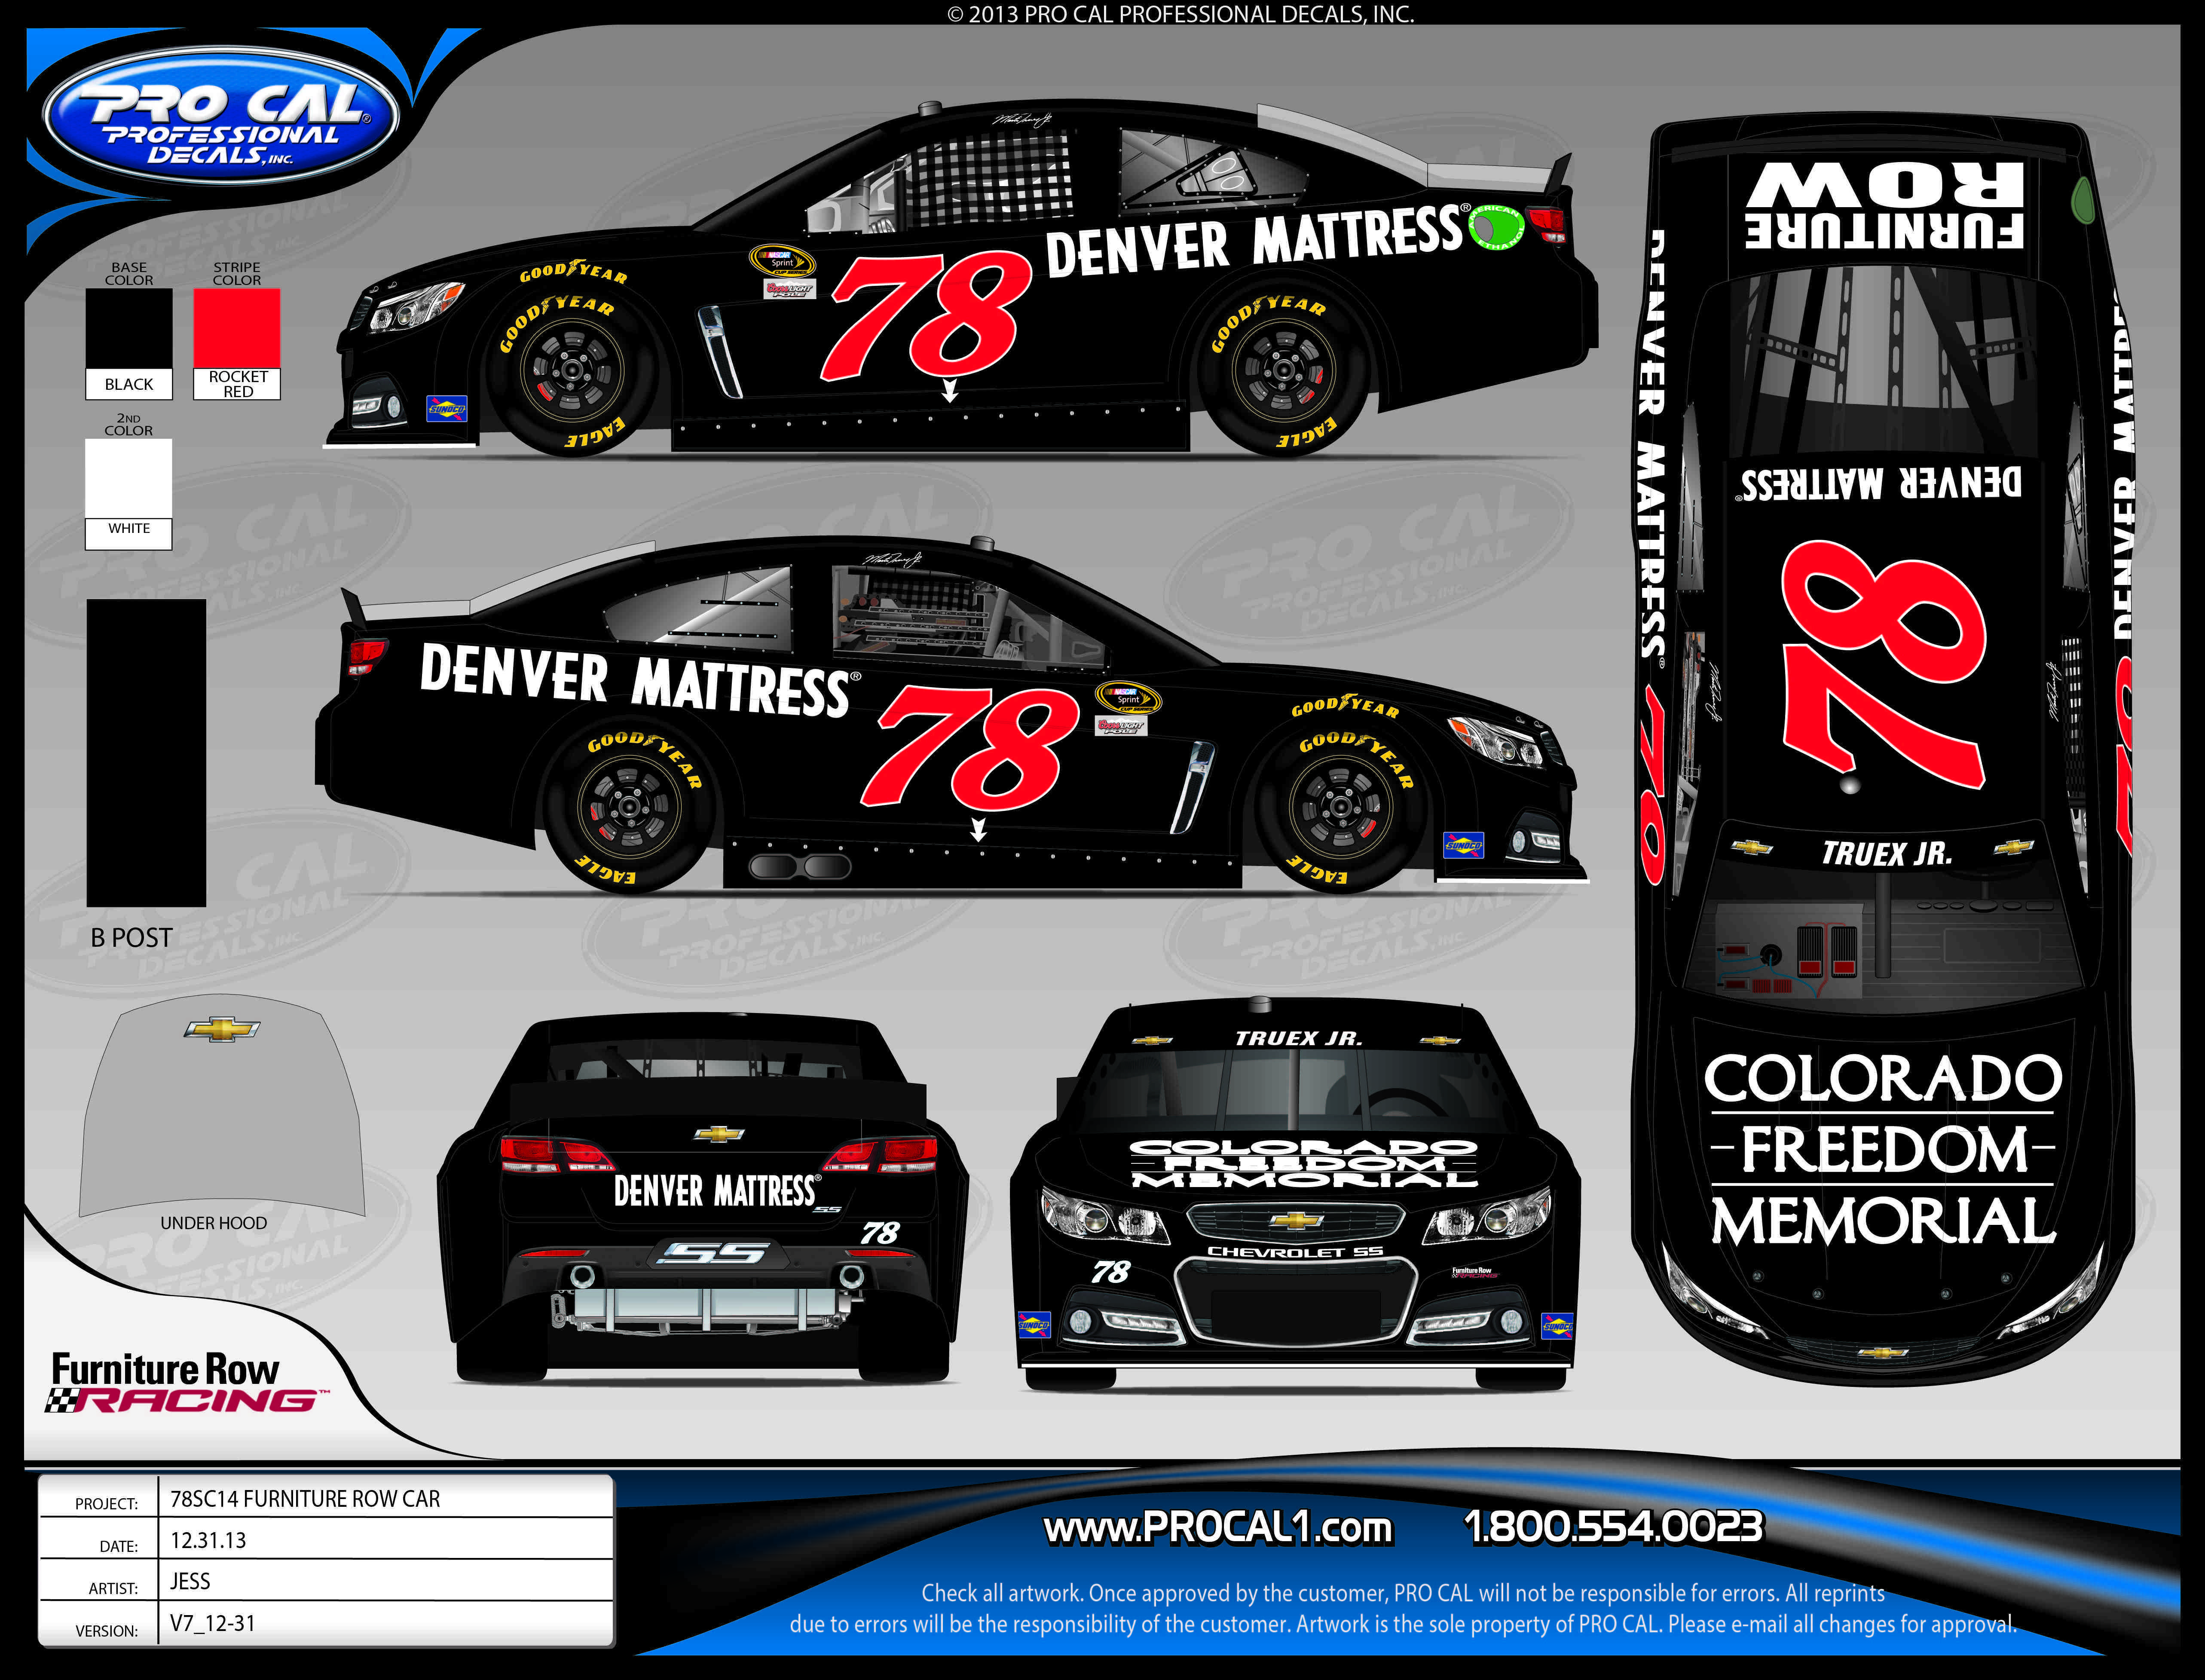 A rendering of the race car that will be on display tomorrow at the Colorado Freedom Memorial. Phoeo courtesy Colorado Freedom Memorial.